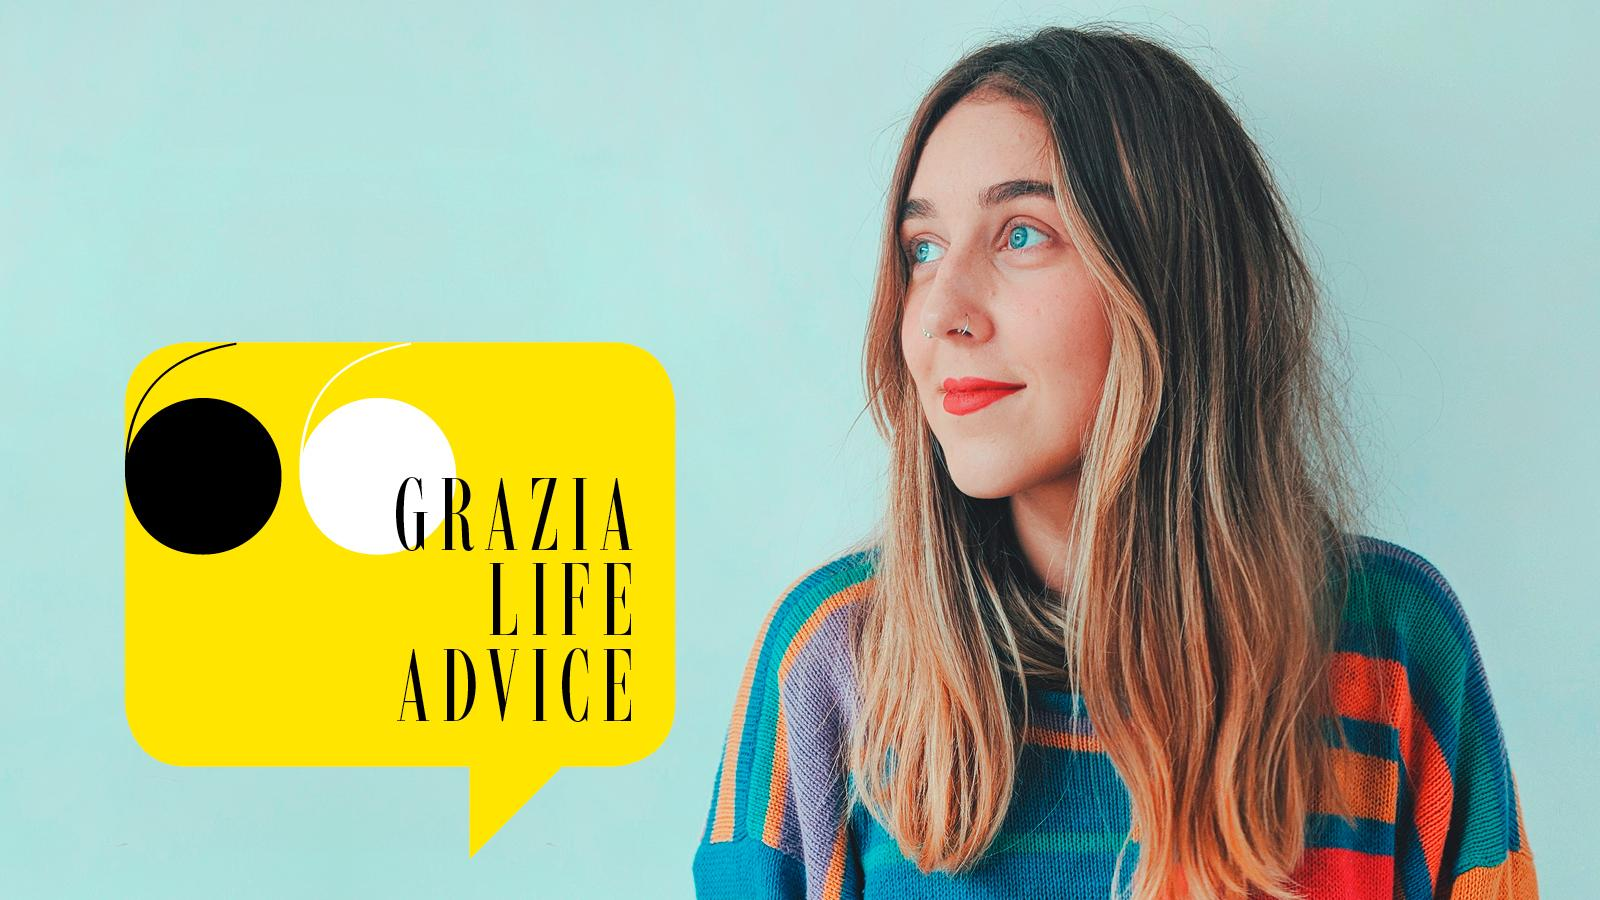 Listen To The Latest Episode Of The Grazia Life Advice